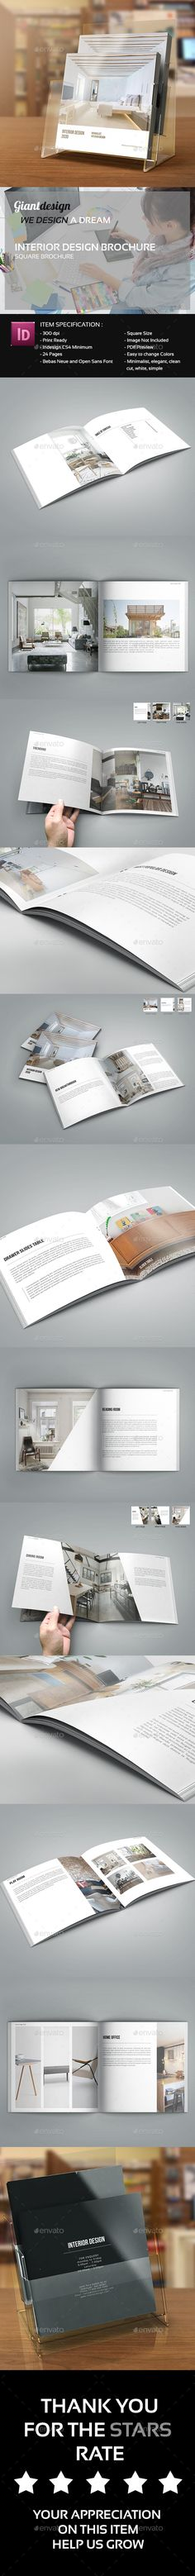 Interior Design  Square Brochure Catalog — InDesign INDD #hotel #fashion • Available here → https://graphicriver.net/item/interior-design-square-brochure-catalog/13686993?ref=pxcr